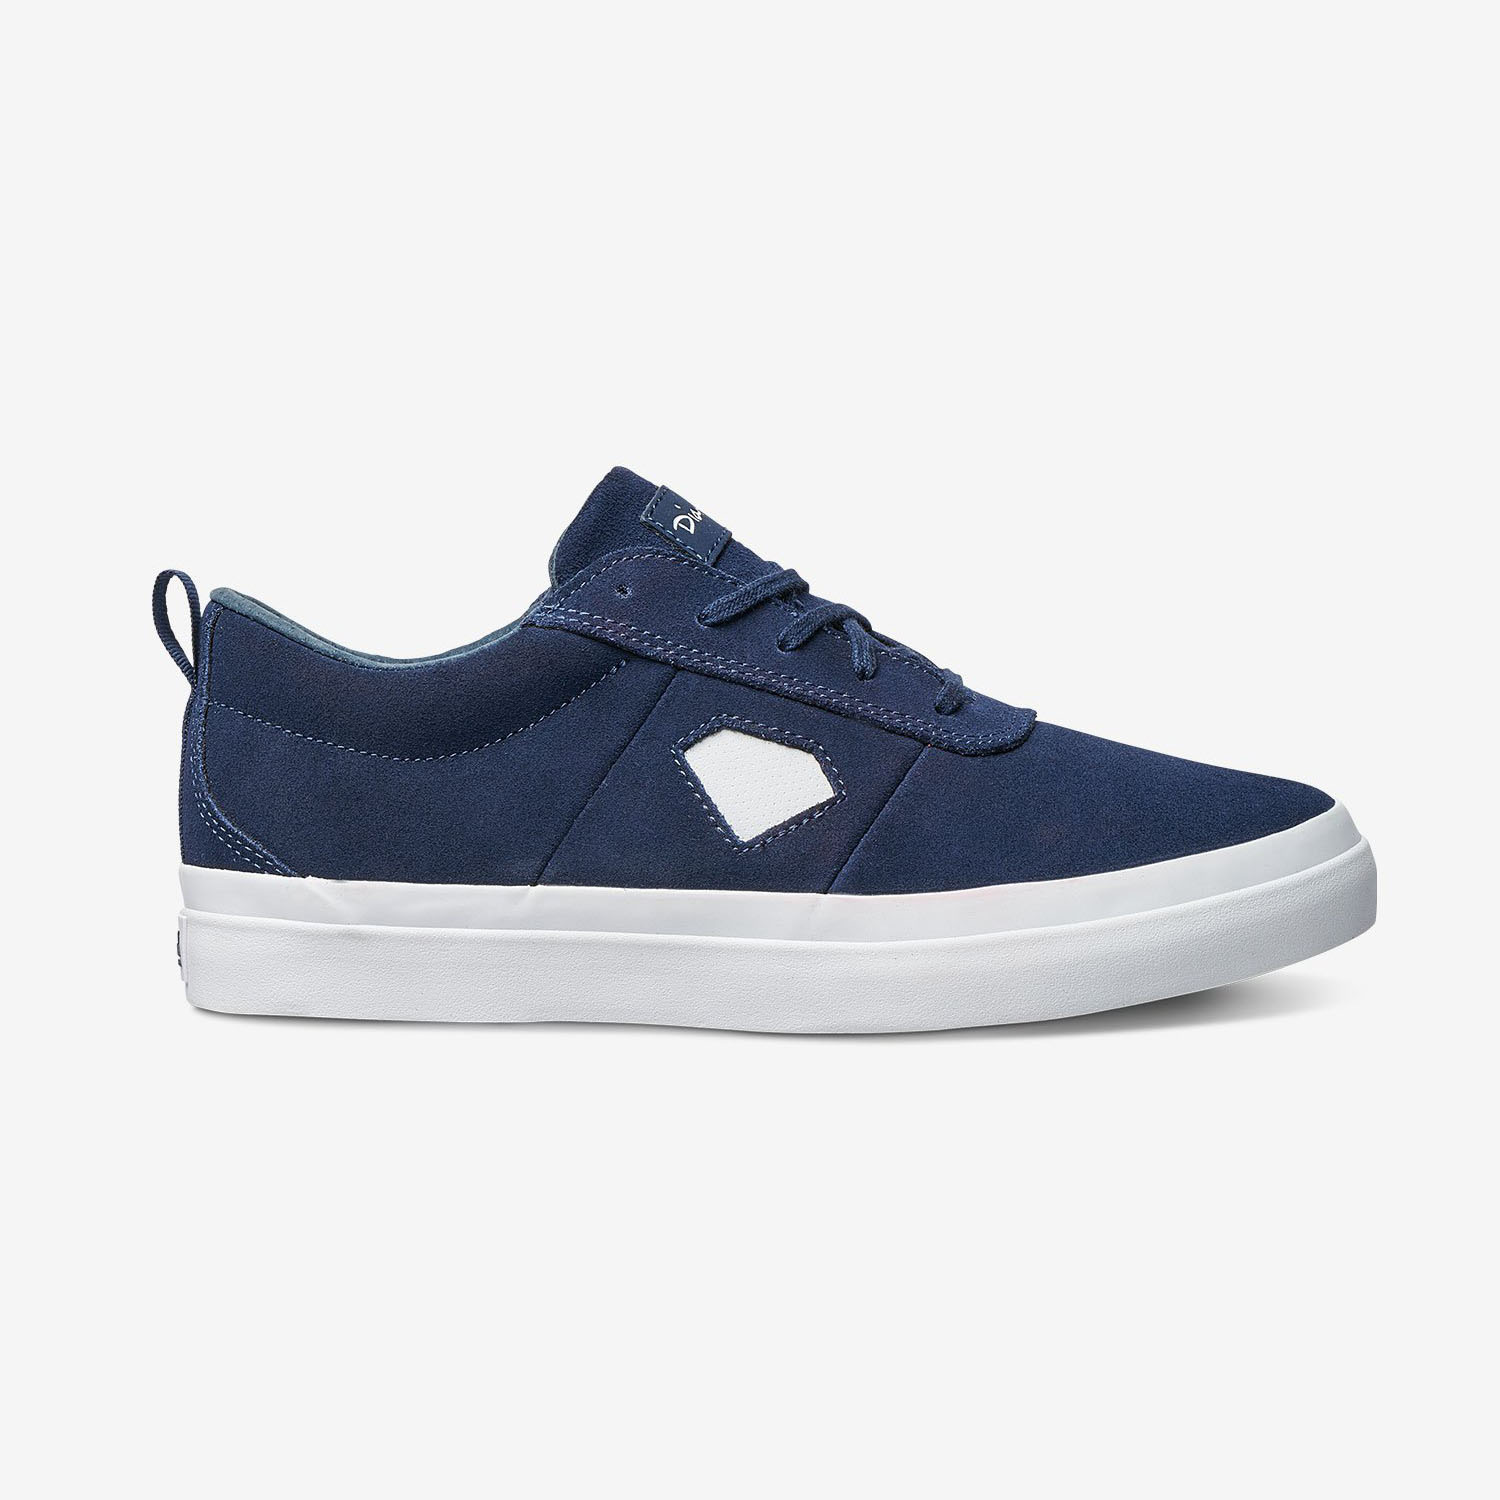 DMD SHOE ICON TWO TONE NVY 08 - Click to enlarge